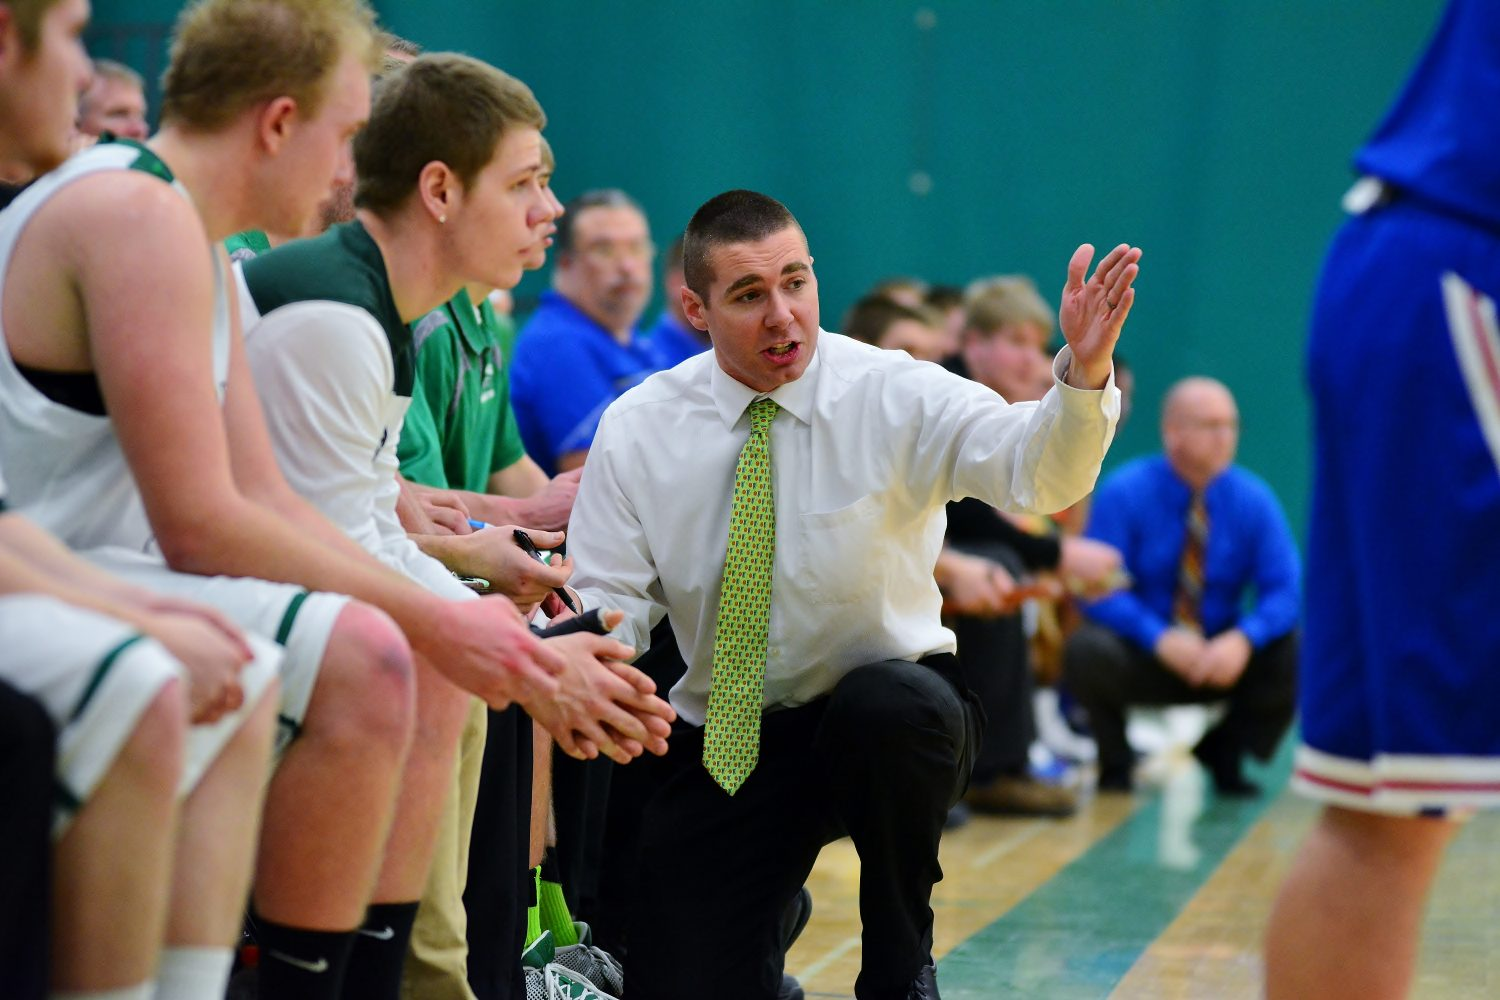 Coach Derek Lemmens gives instructions to players on the bench.